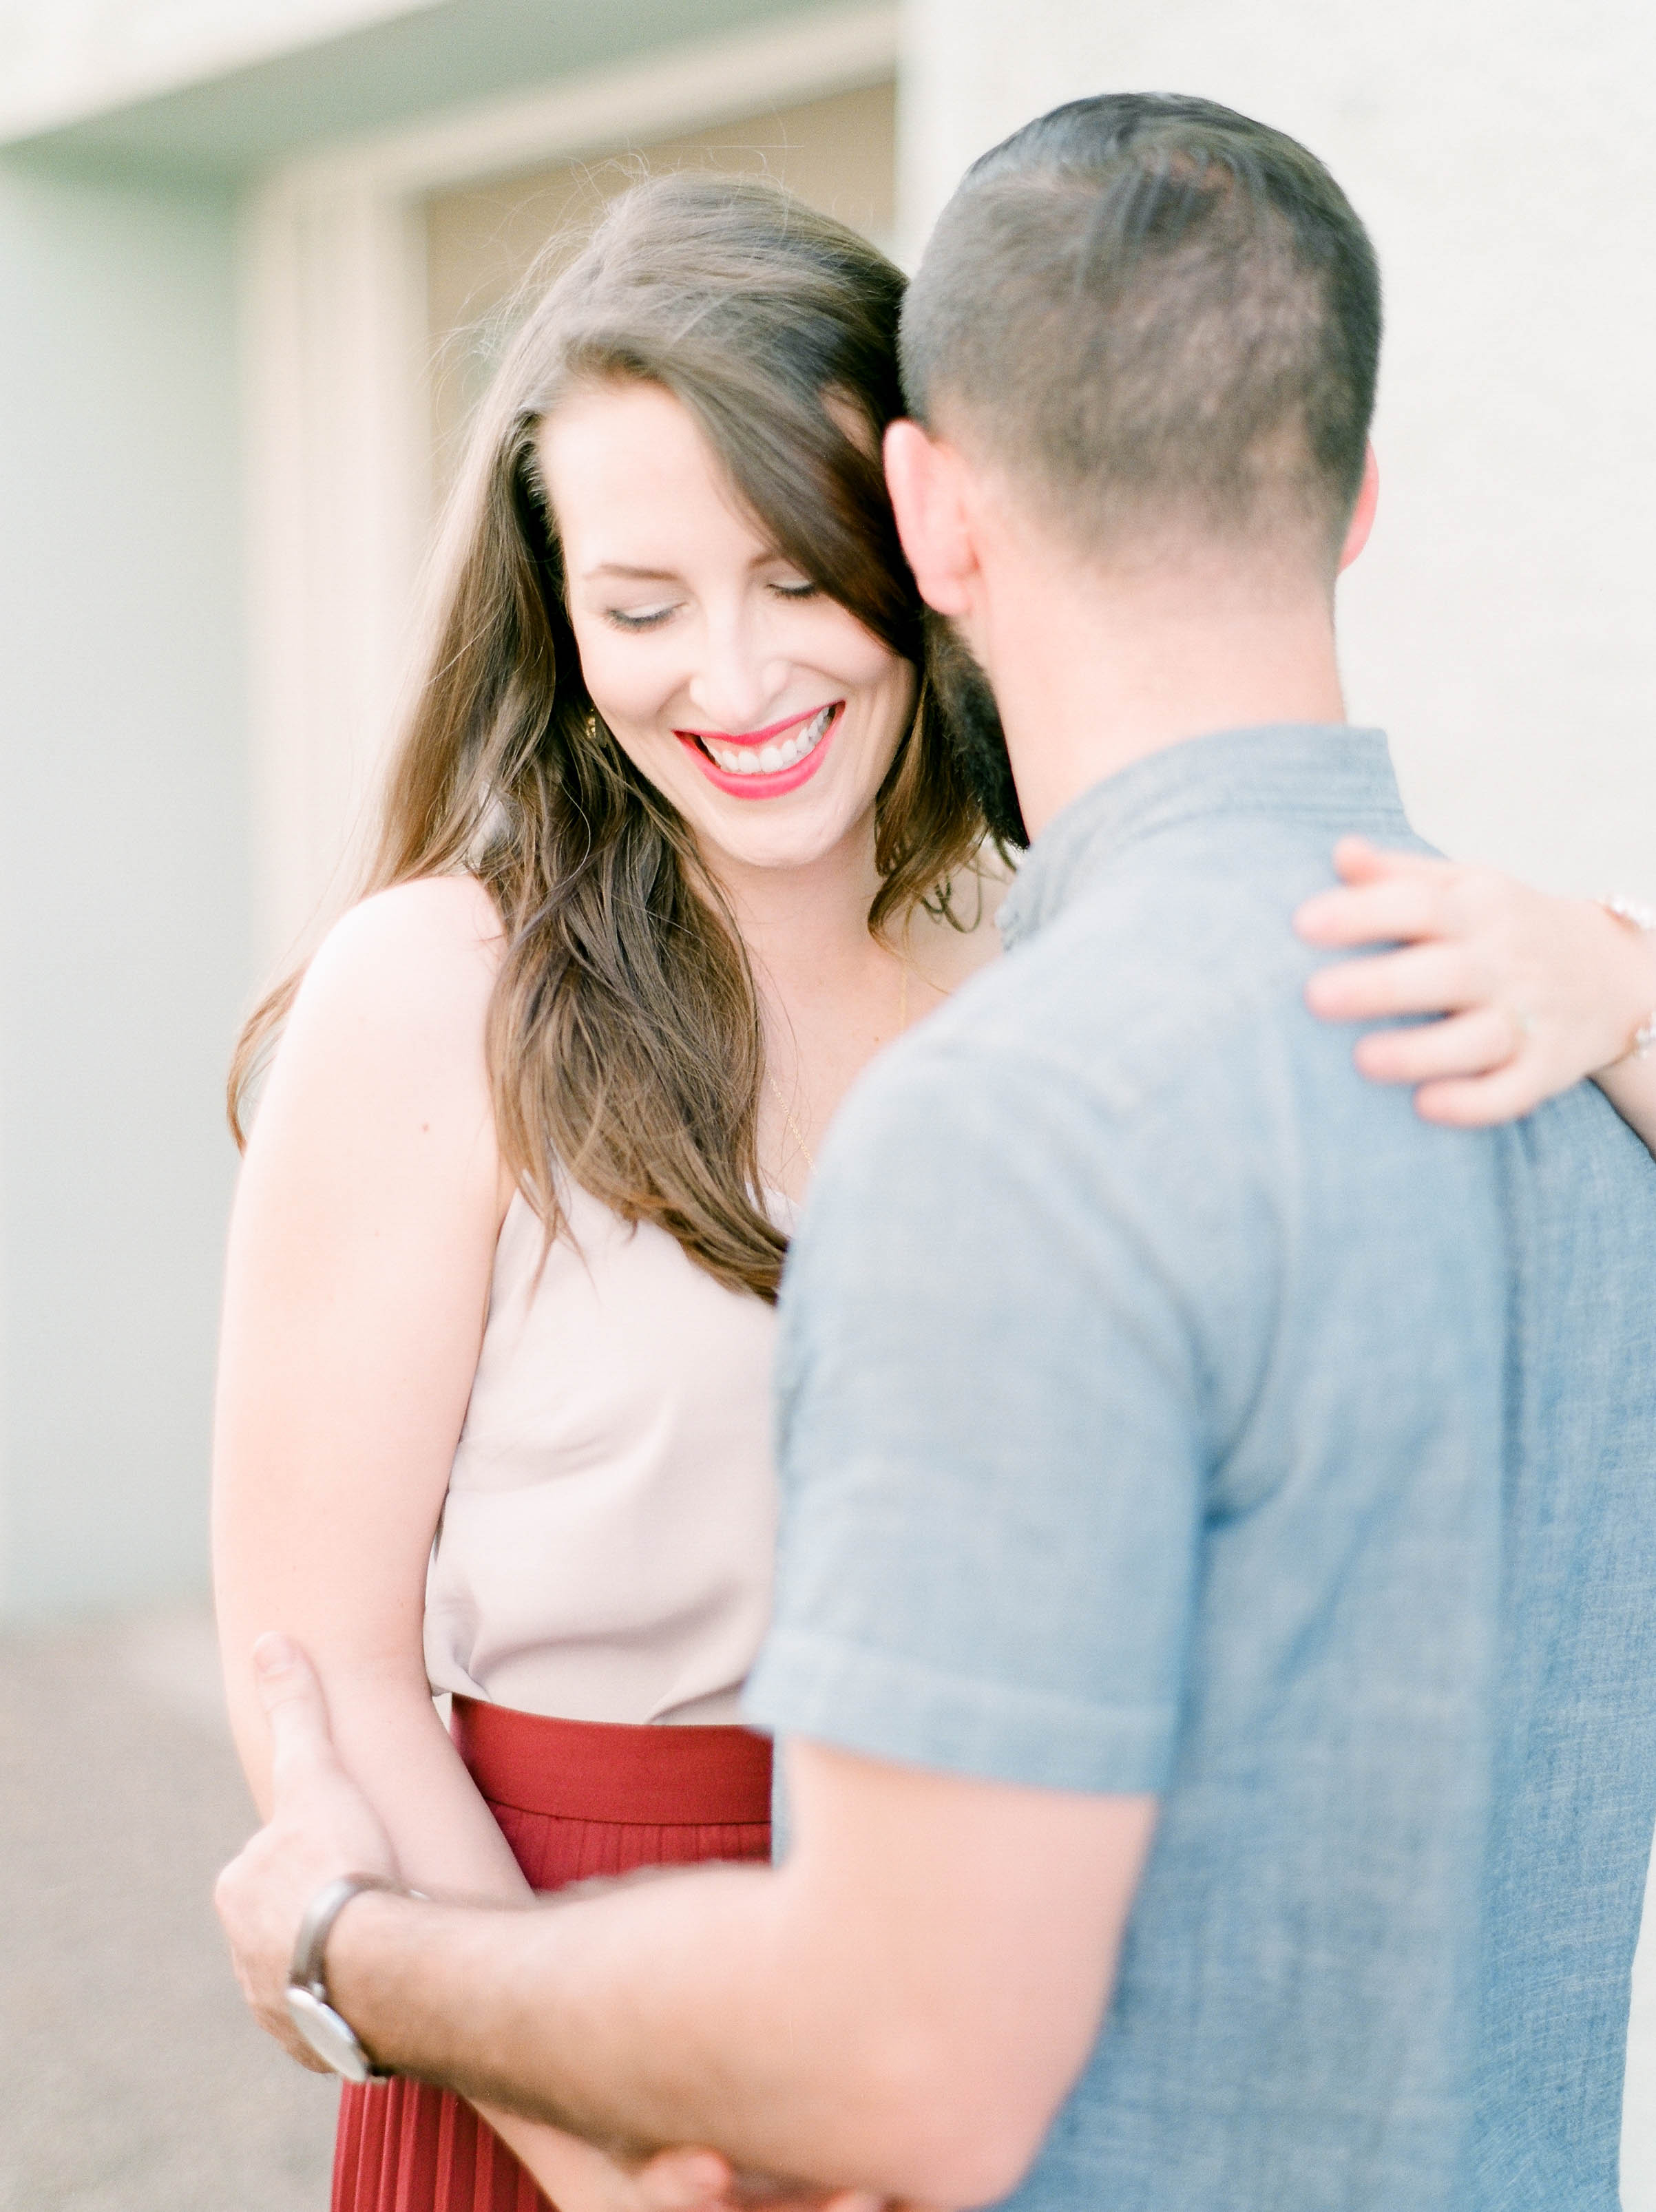 Andy & Elizabeth - MARFA, TEXAS ANNIVERSARY SESSION